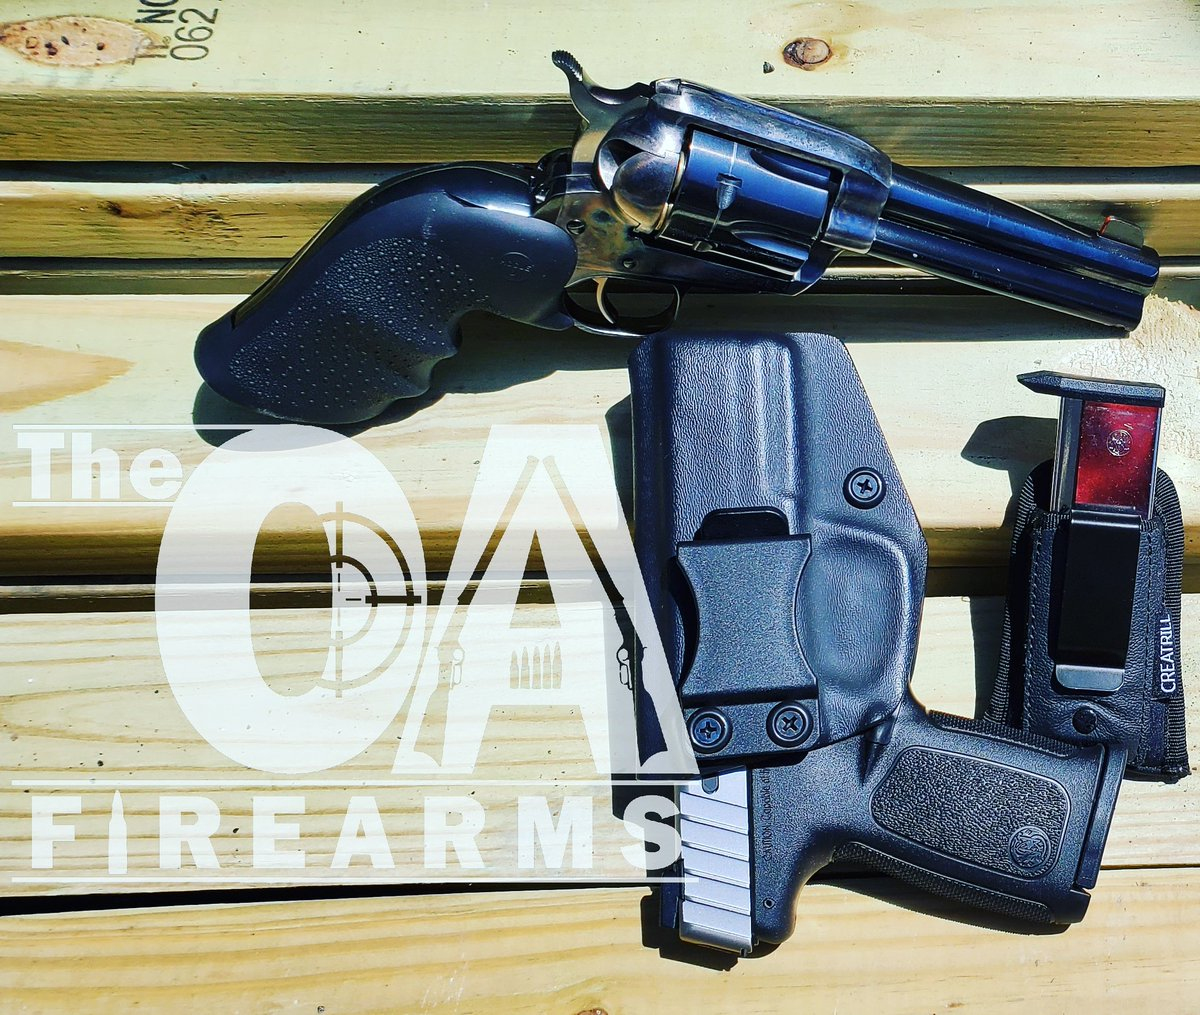 #ruger #rugervaquero @Smith_WessonInc #sd40ve @TheOAFirearms  . . . . . #theoafirearms #defendthesecond #Standupfor2a #gunsdaily #firearms #gunrange #comeandtakeit #2A #progun #pro2a #2ndAmendment #firearm #2amendment #2AShallNotBeInfringed #gunrights #gunssavelives #gunspic.twitter.com/gijwj1Pjqw